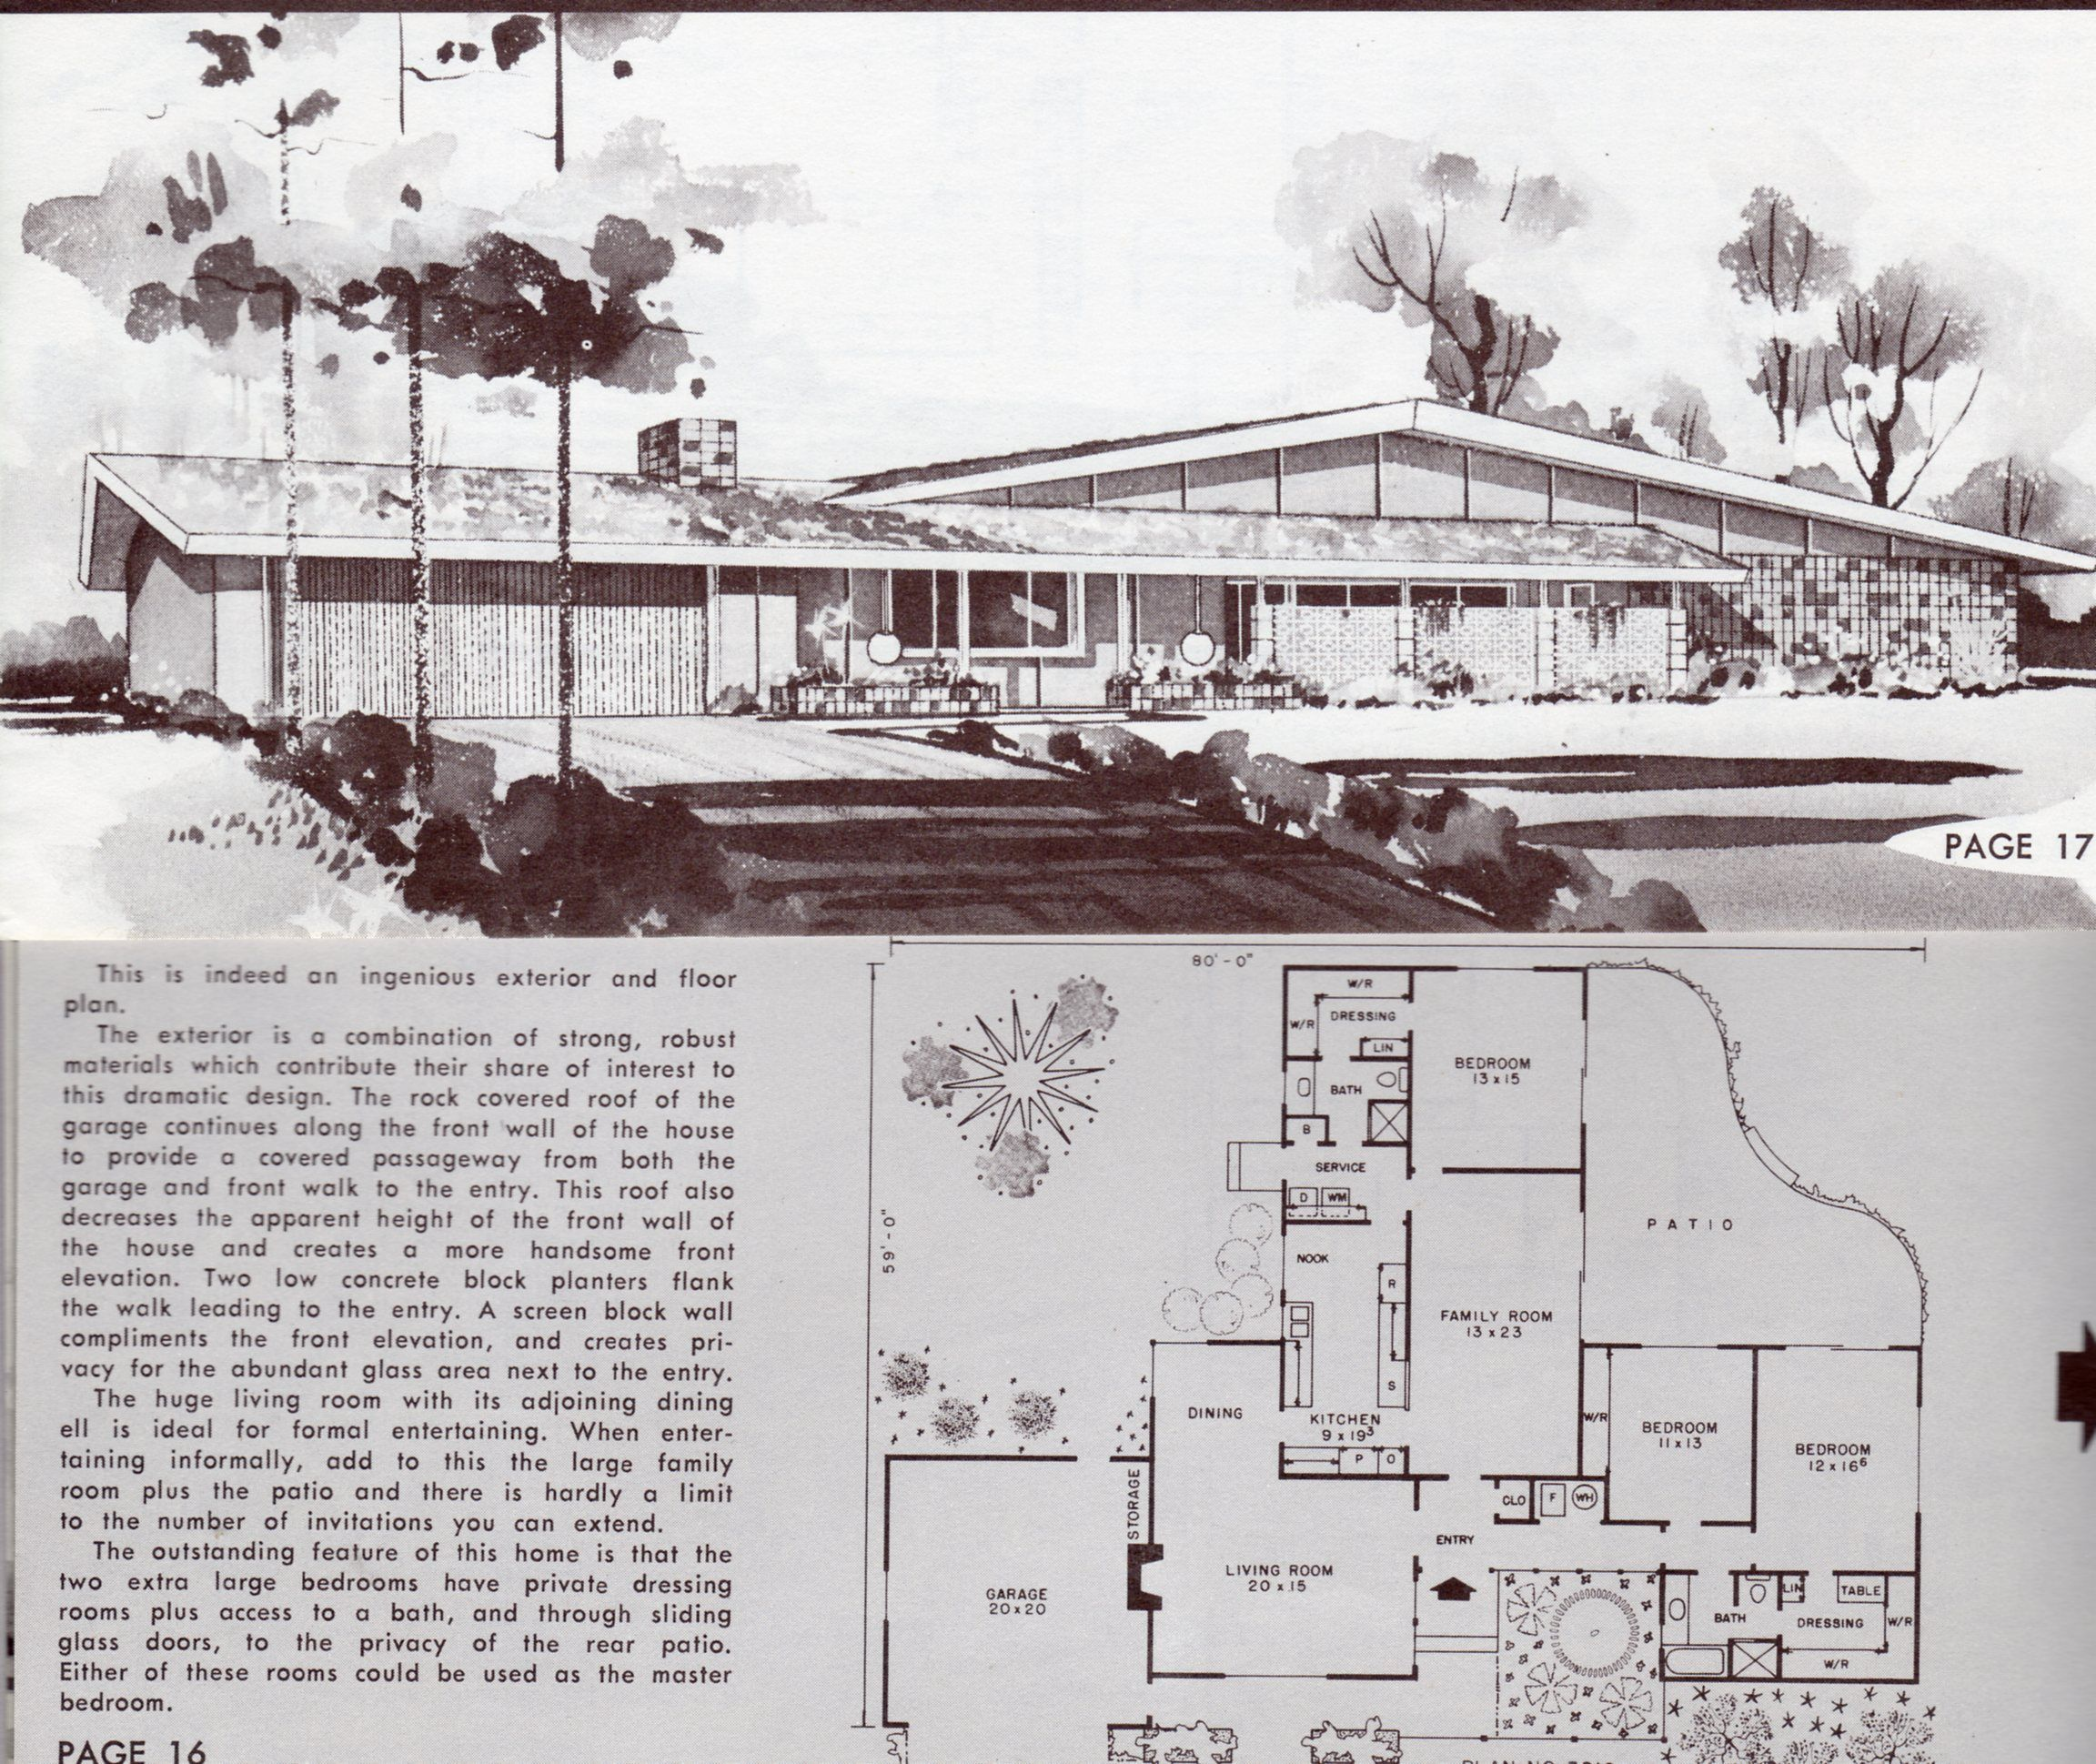 Ranch House Plans From The 1960s Google Search House Plans With Pictures Mid Century Modern House Plans Vintage House Plans